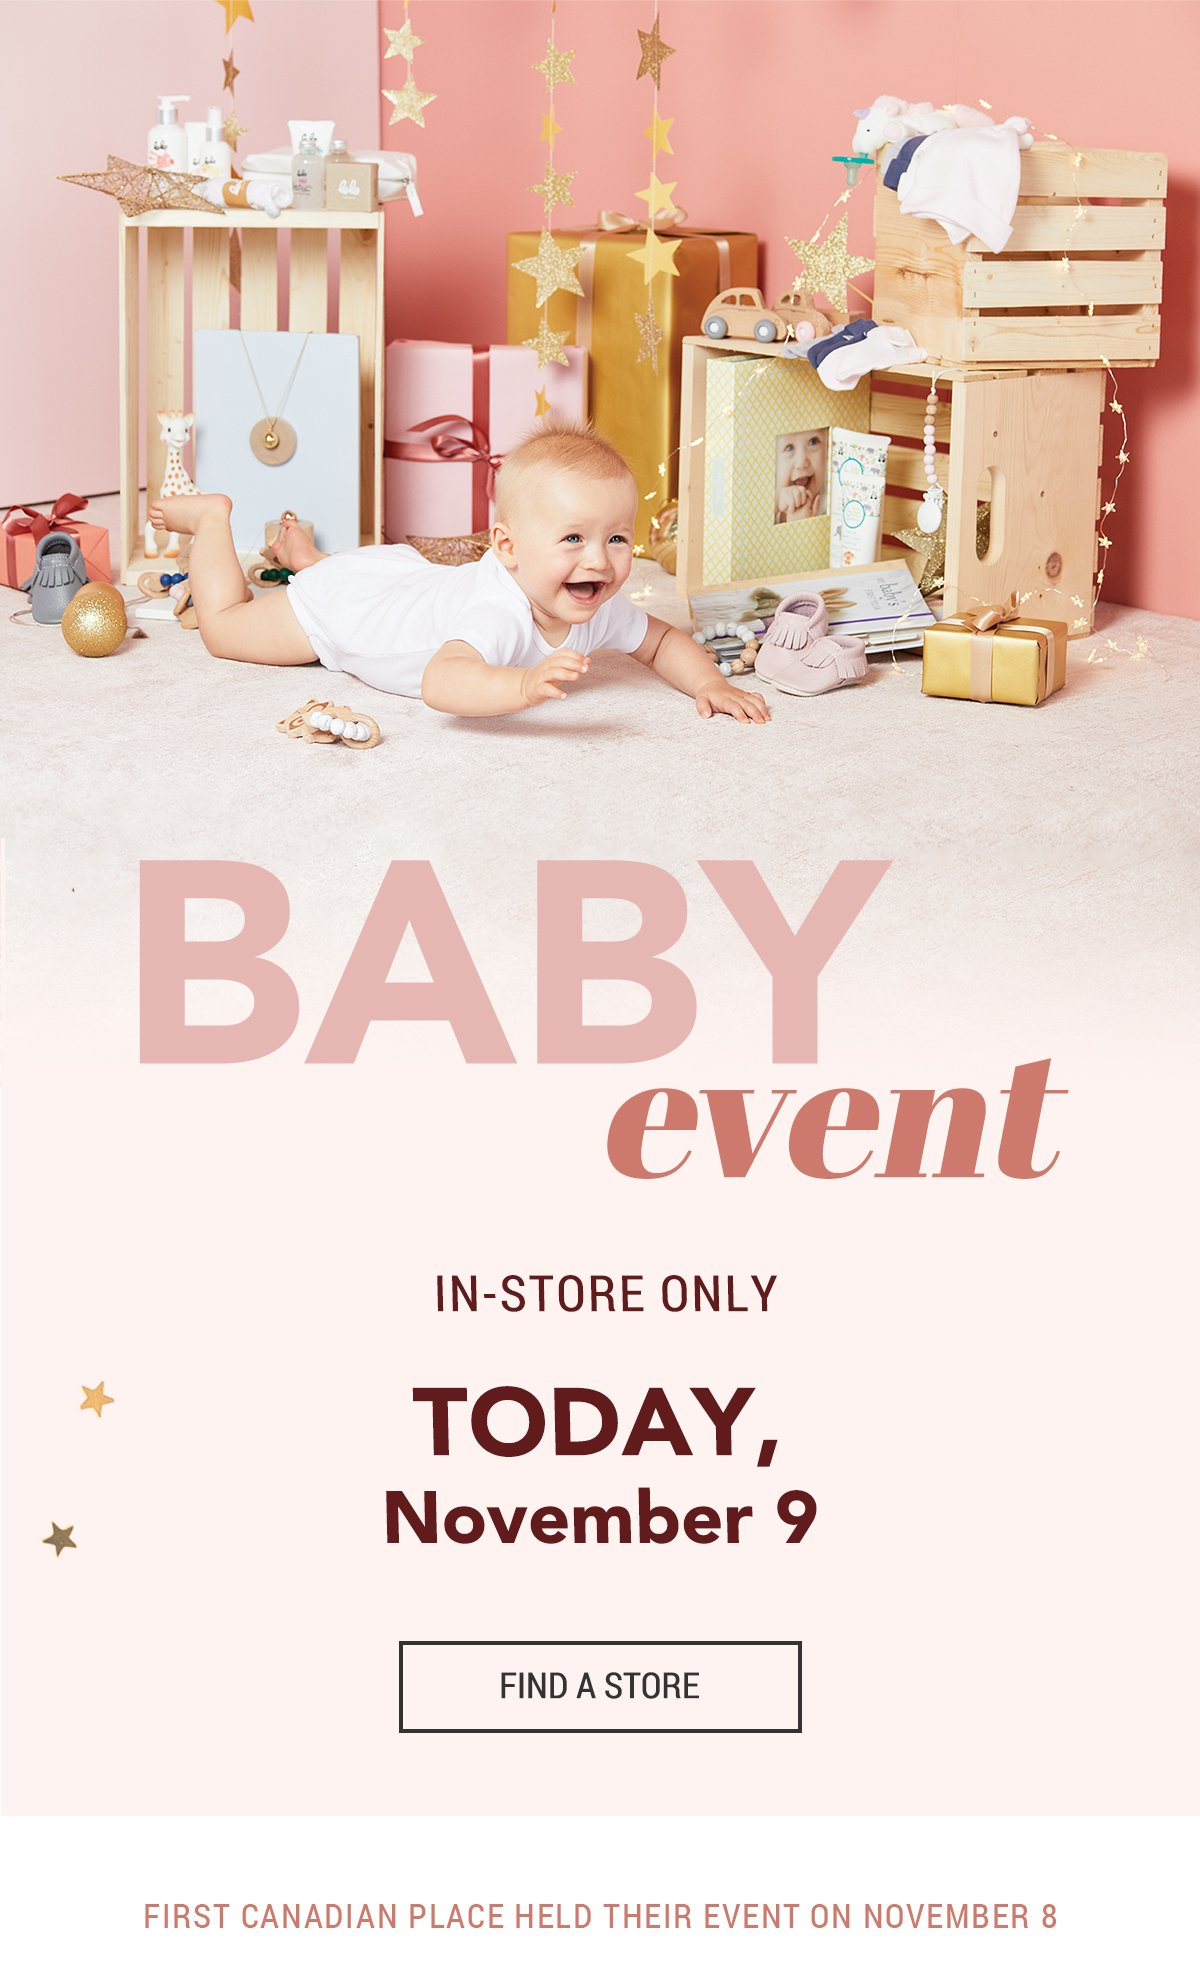 Baby Event IT'S TODAY, November 9 In-store only